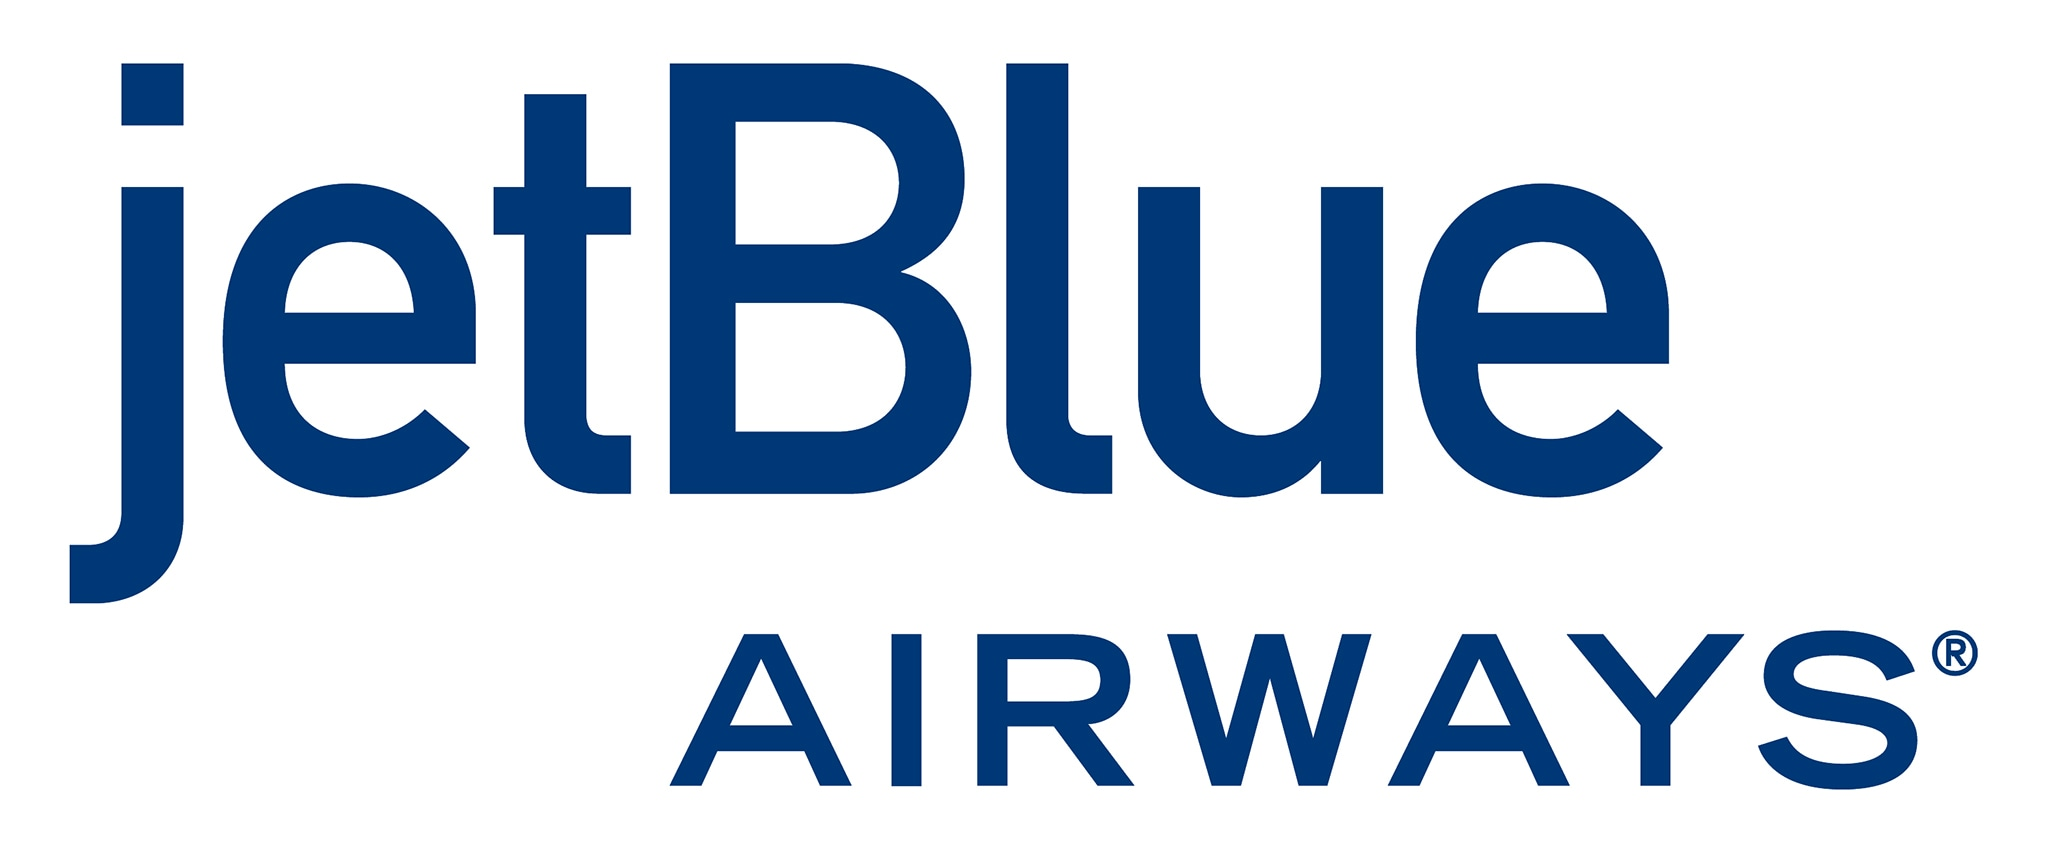 Shop jetblue.com